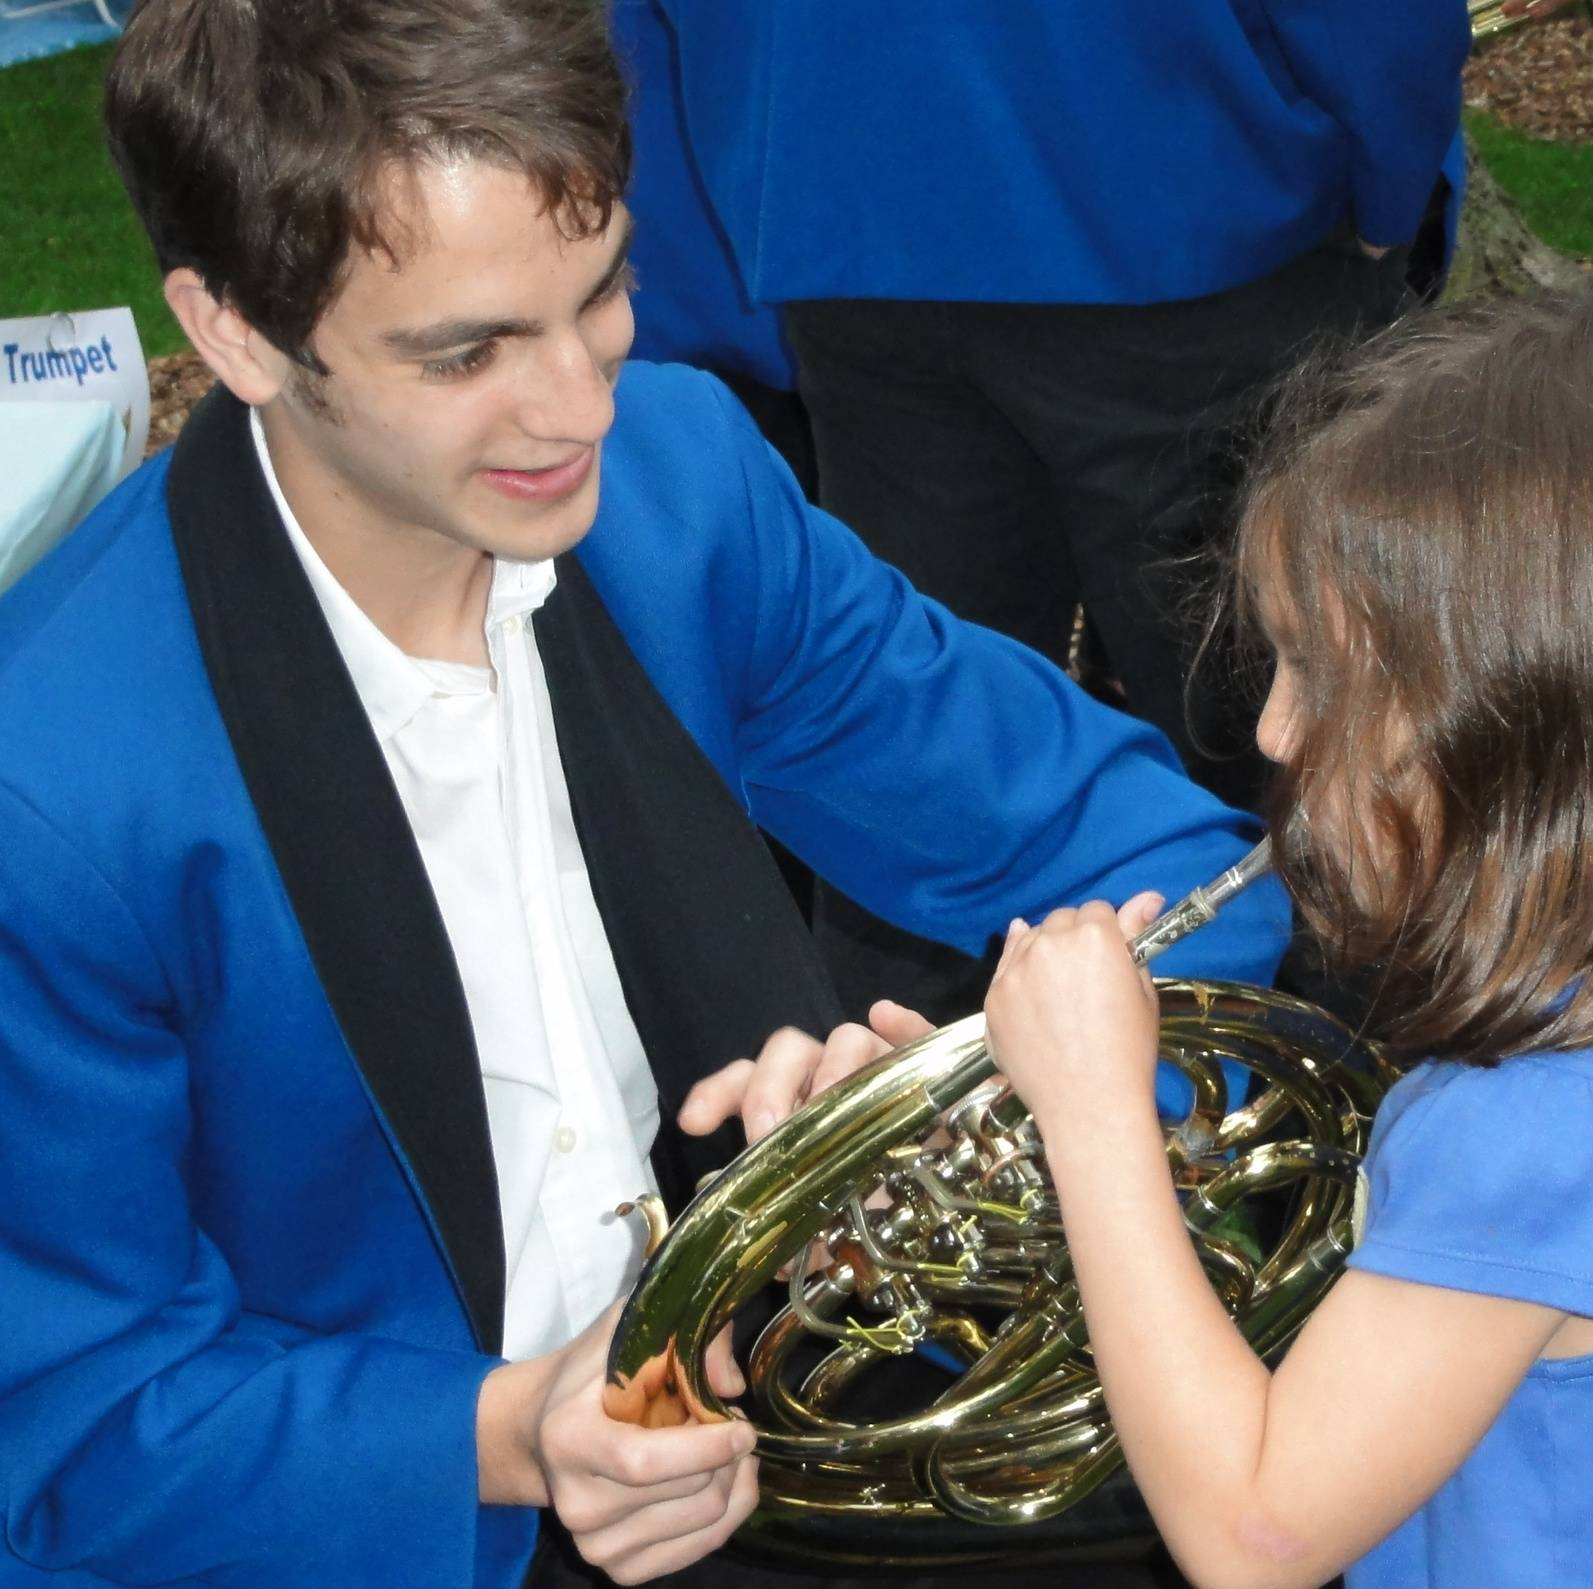 Always a popular activity, the Wheaton Municipal Band's instrument zoo returns at the children's concert on June 27 in Memorial Park.